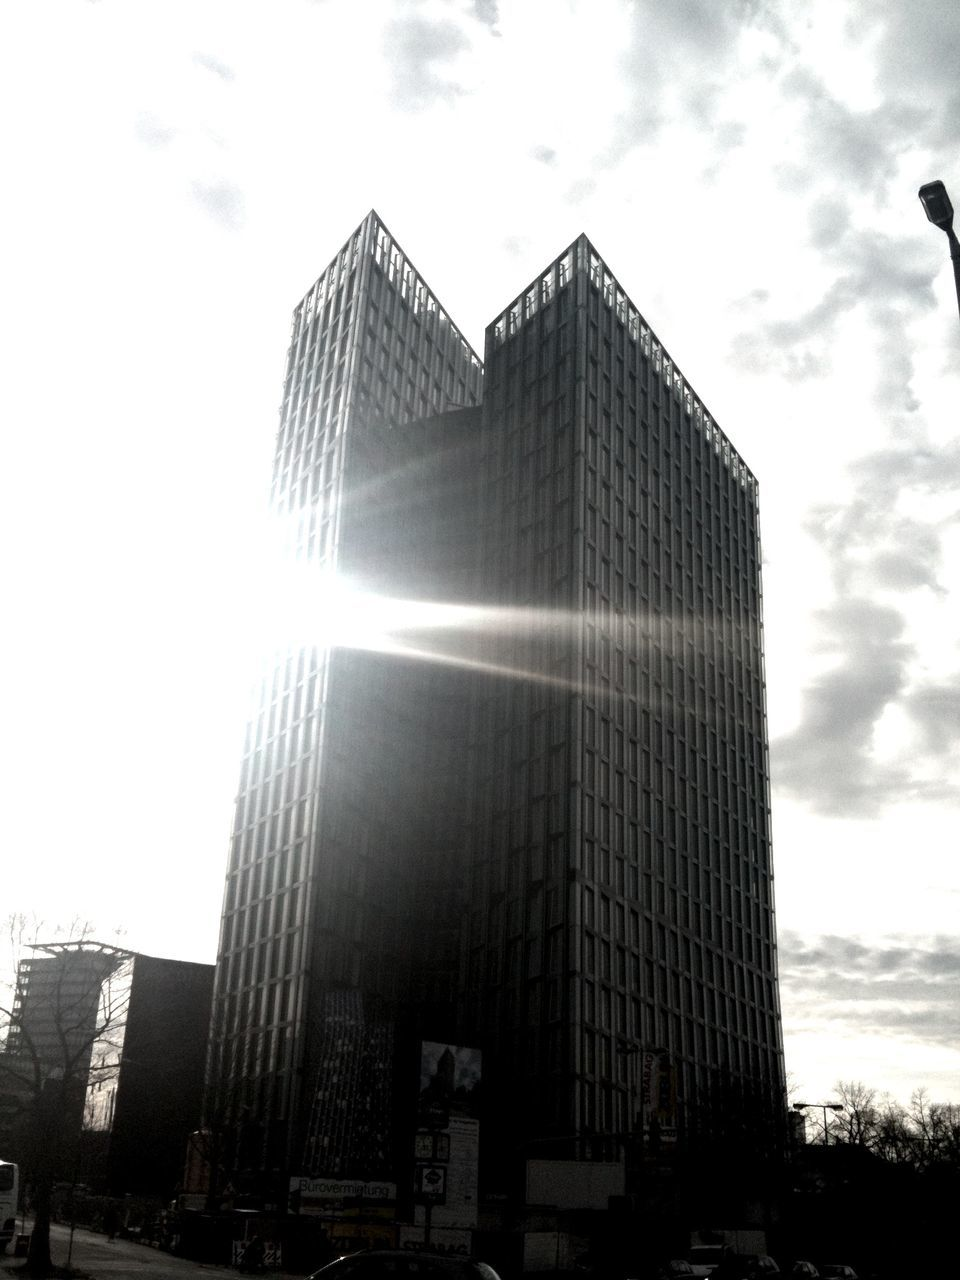 architecture, built structure, low angle view, sky, building exterior, skyscraper, day, sunlight, cloud - sky, outdoors, sun, modern, no people, city